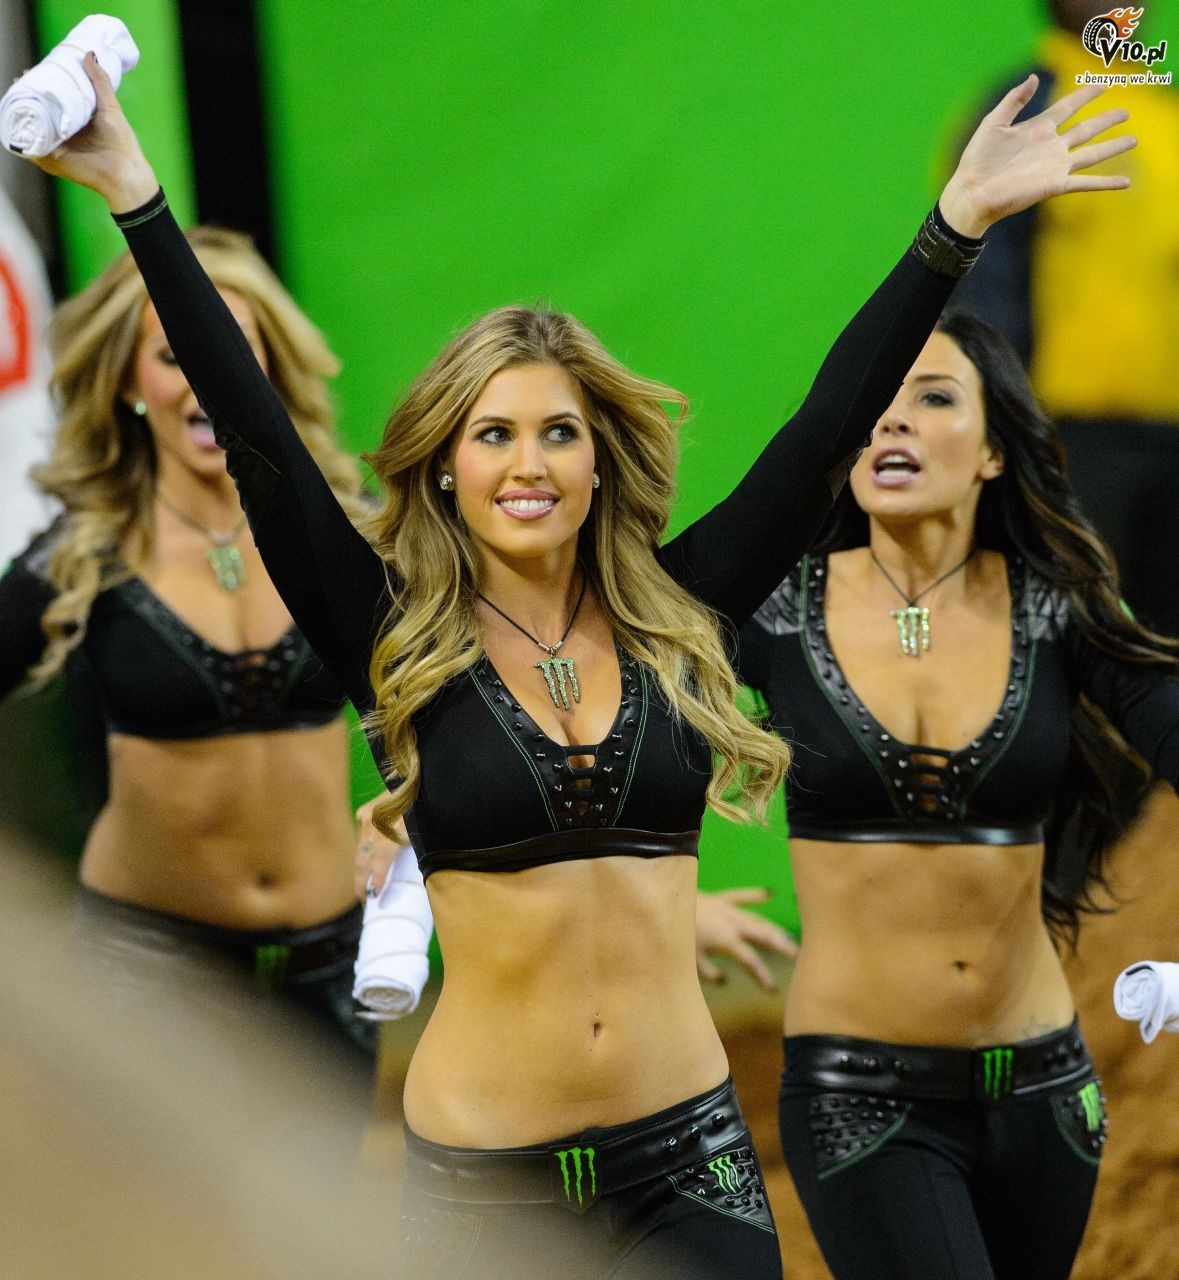 Ama Supercross 2014 Atlanta Zdj 62